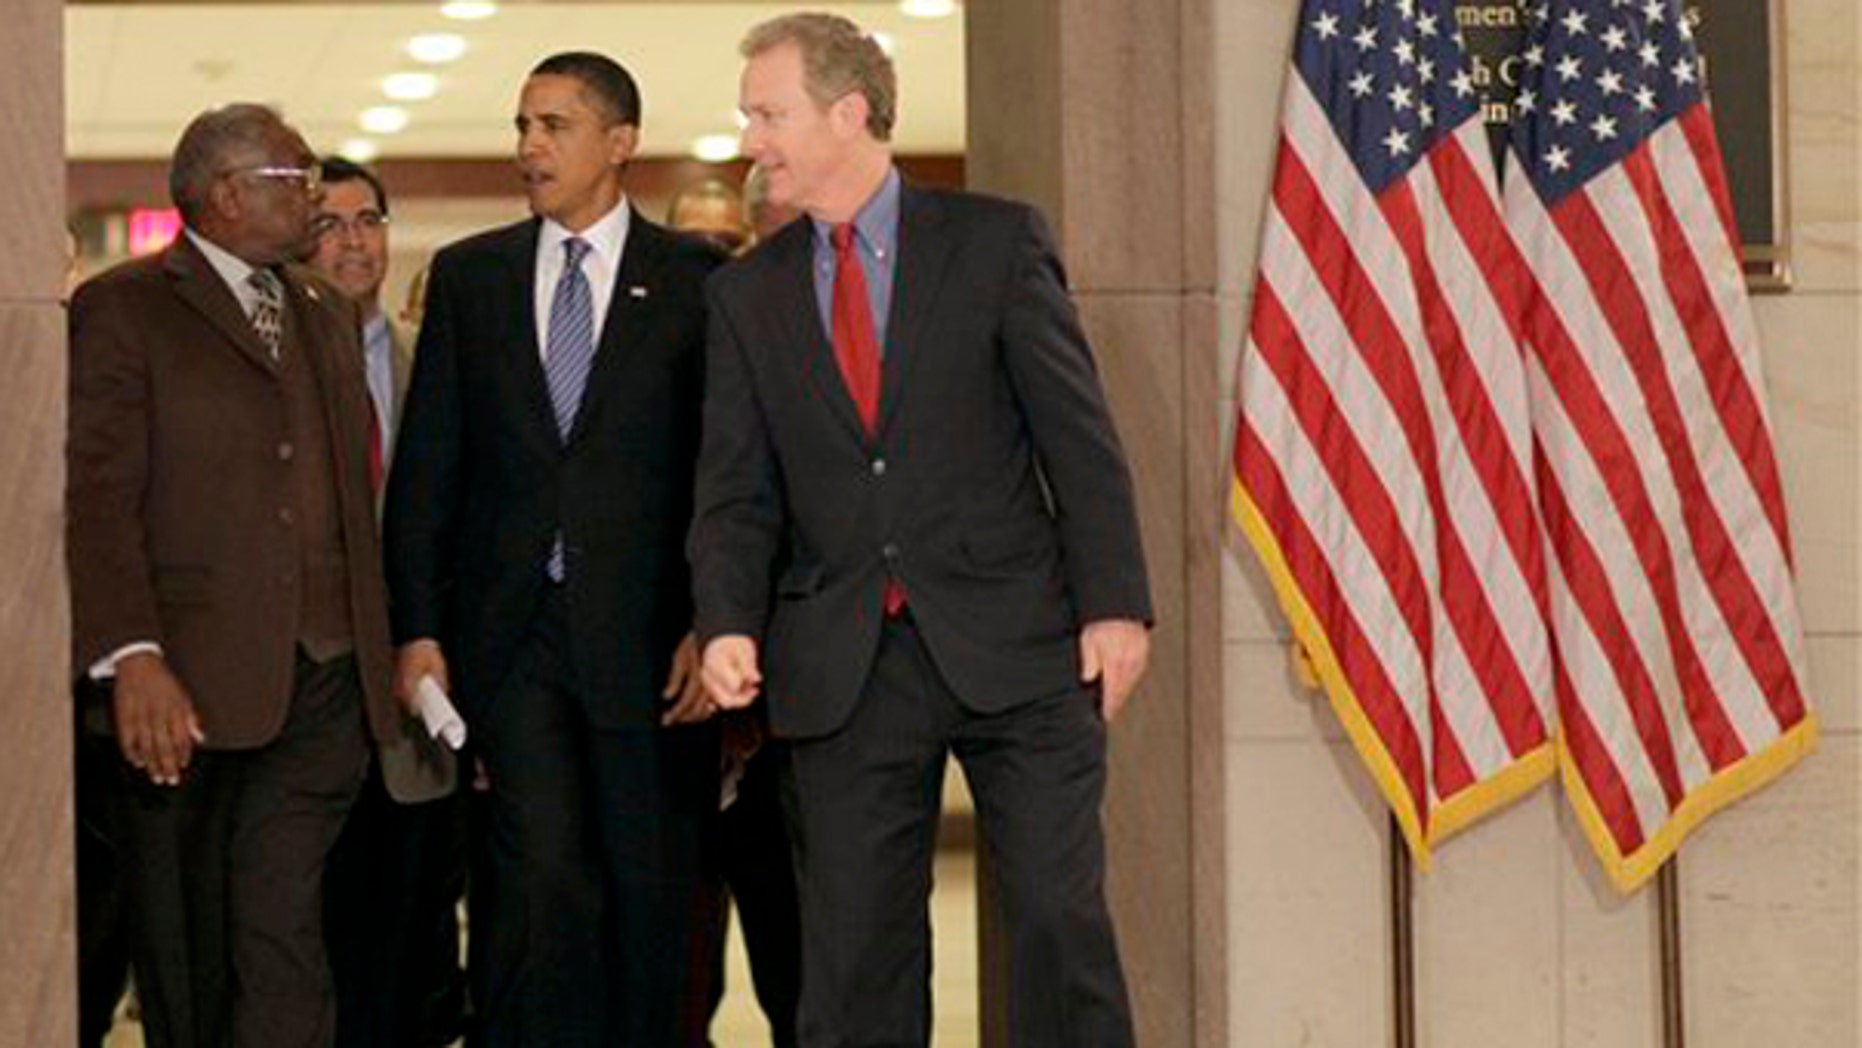 President Obama walks in with Rep. James Clyburn, Rep. Xaiver Becerra, and Rep. Chris Van Hollen as he prepares to speak at the House Democratic Leadership caucus retreat, Thursday, Jan. 14, 2010. (AP)